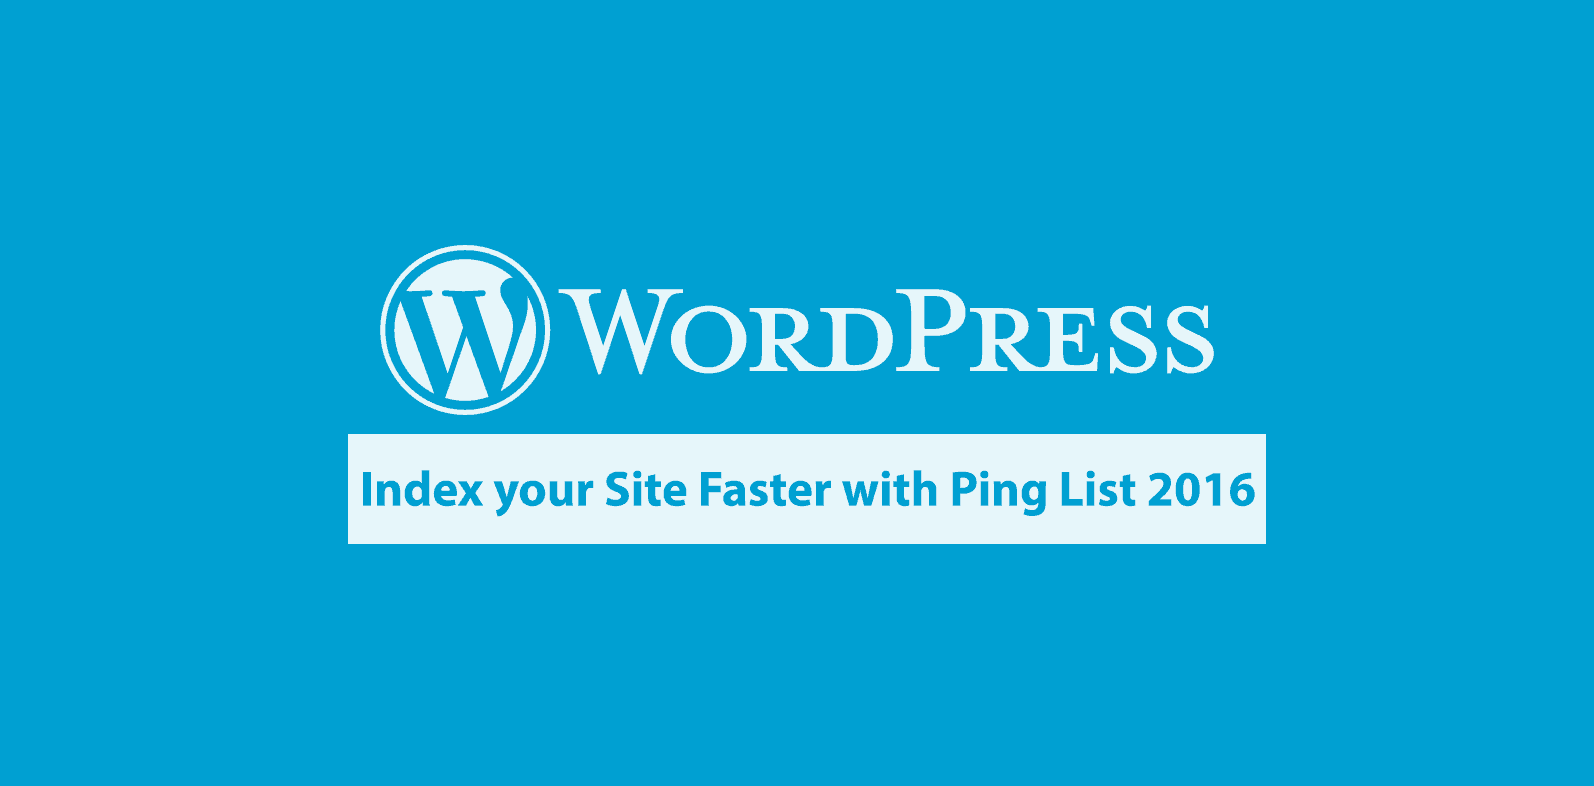 WordPress Ping List - Index your Blog Faster with WordPress Ping List